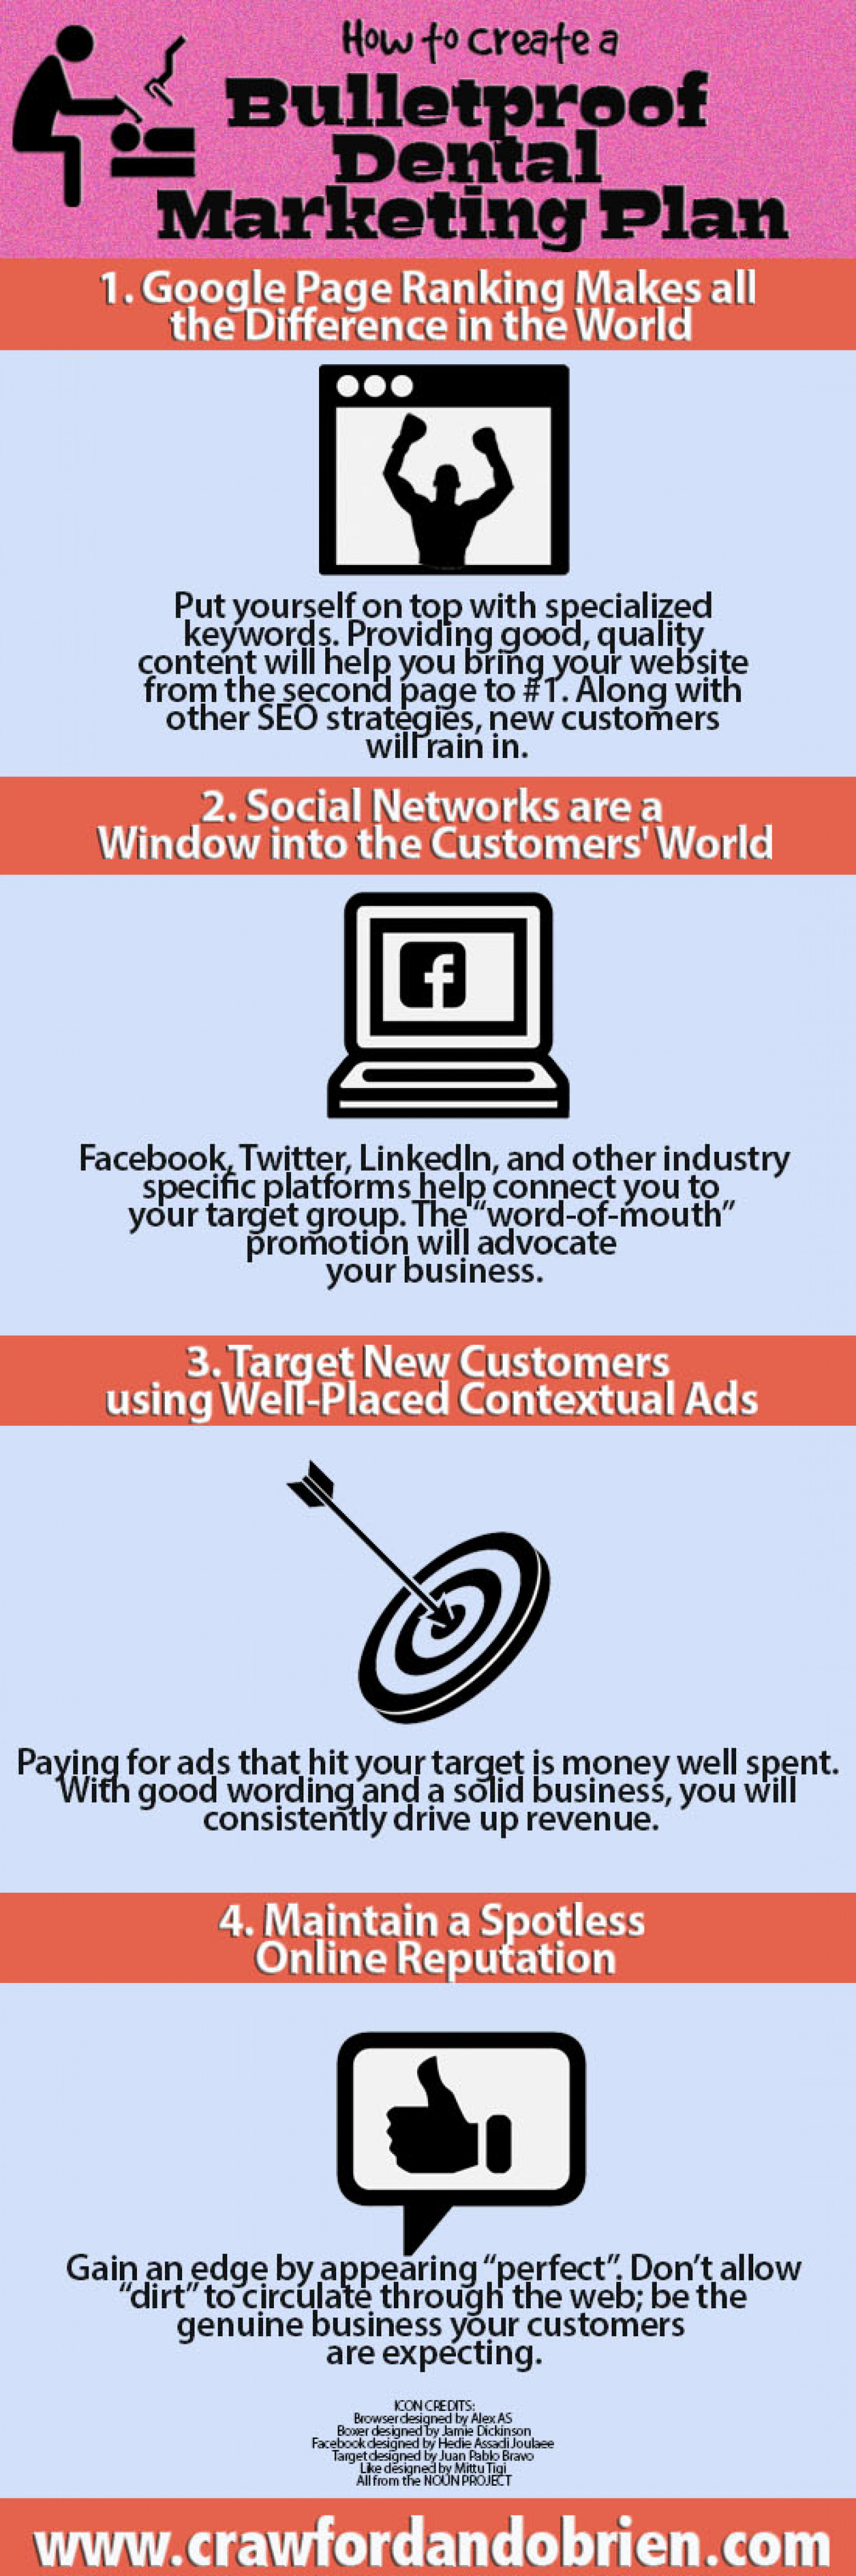 How to Create a Bulletproof Dental Marketing Plan Infographic